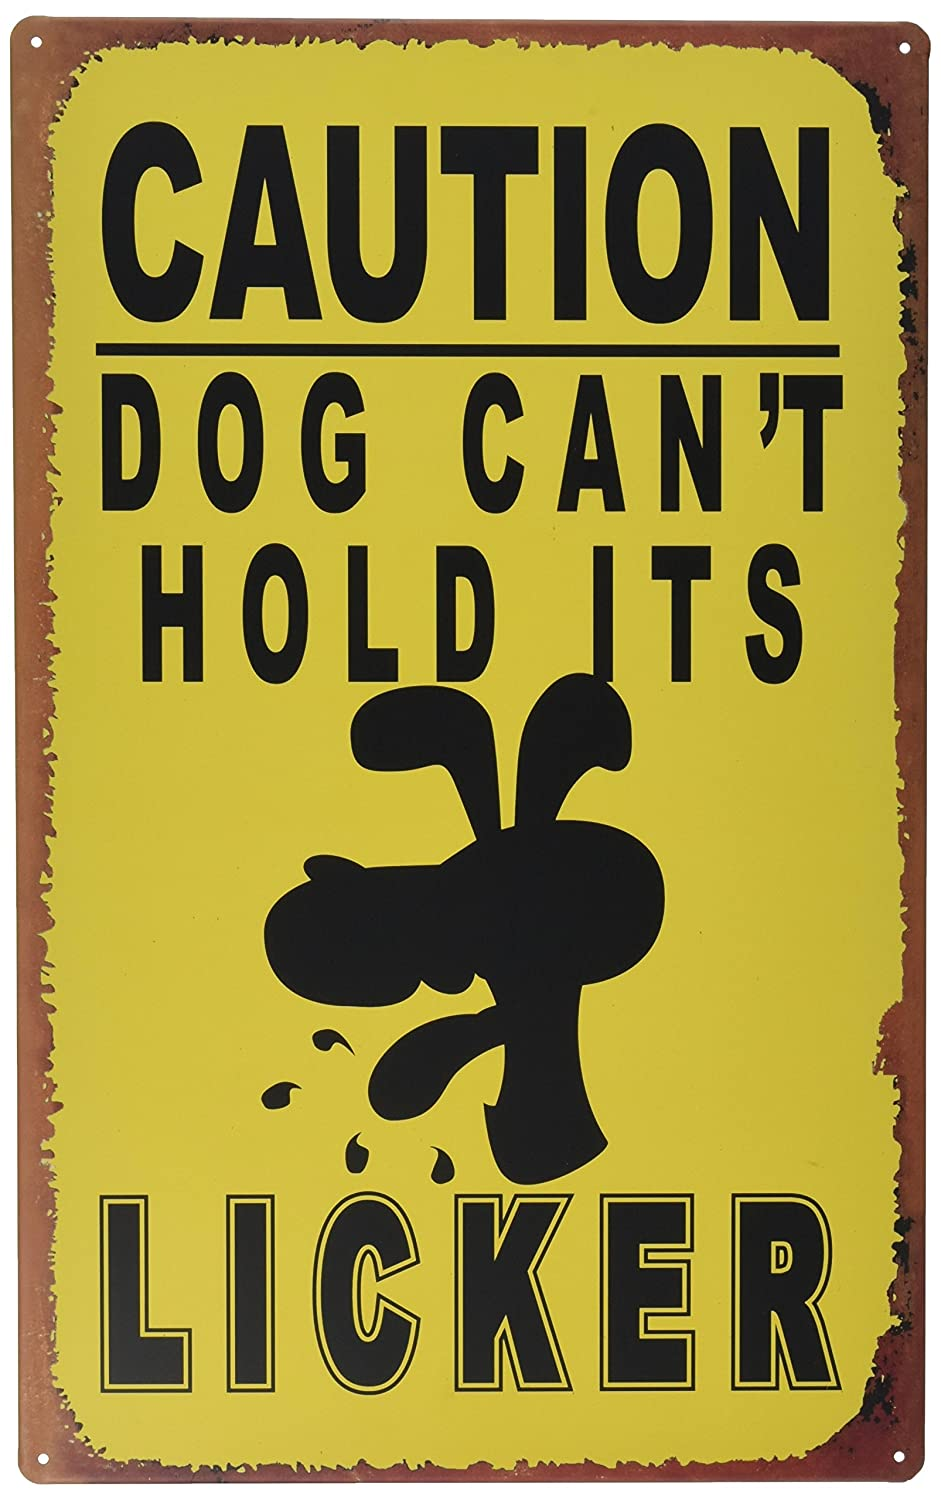 Amazon.com: Ohio Wholesale Licker Caution Sign Wall Art, from our ...